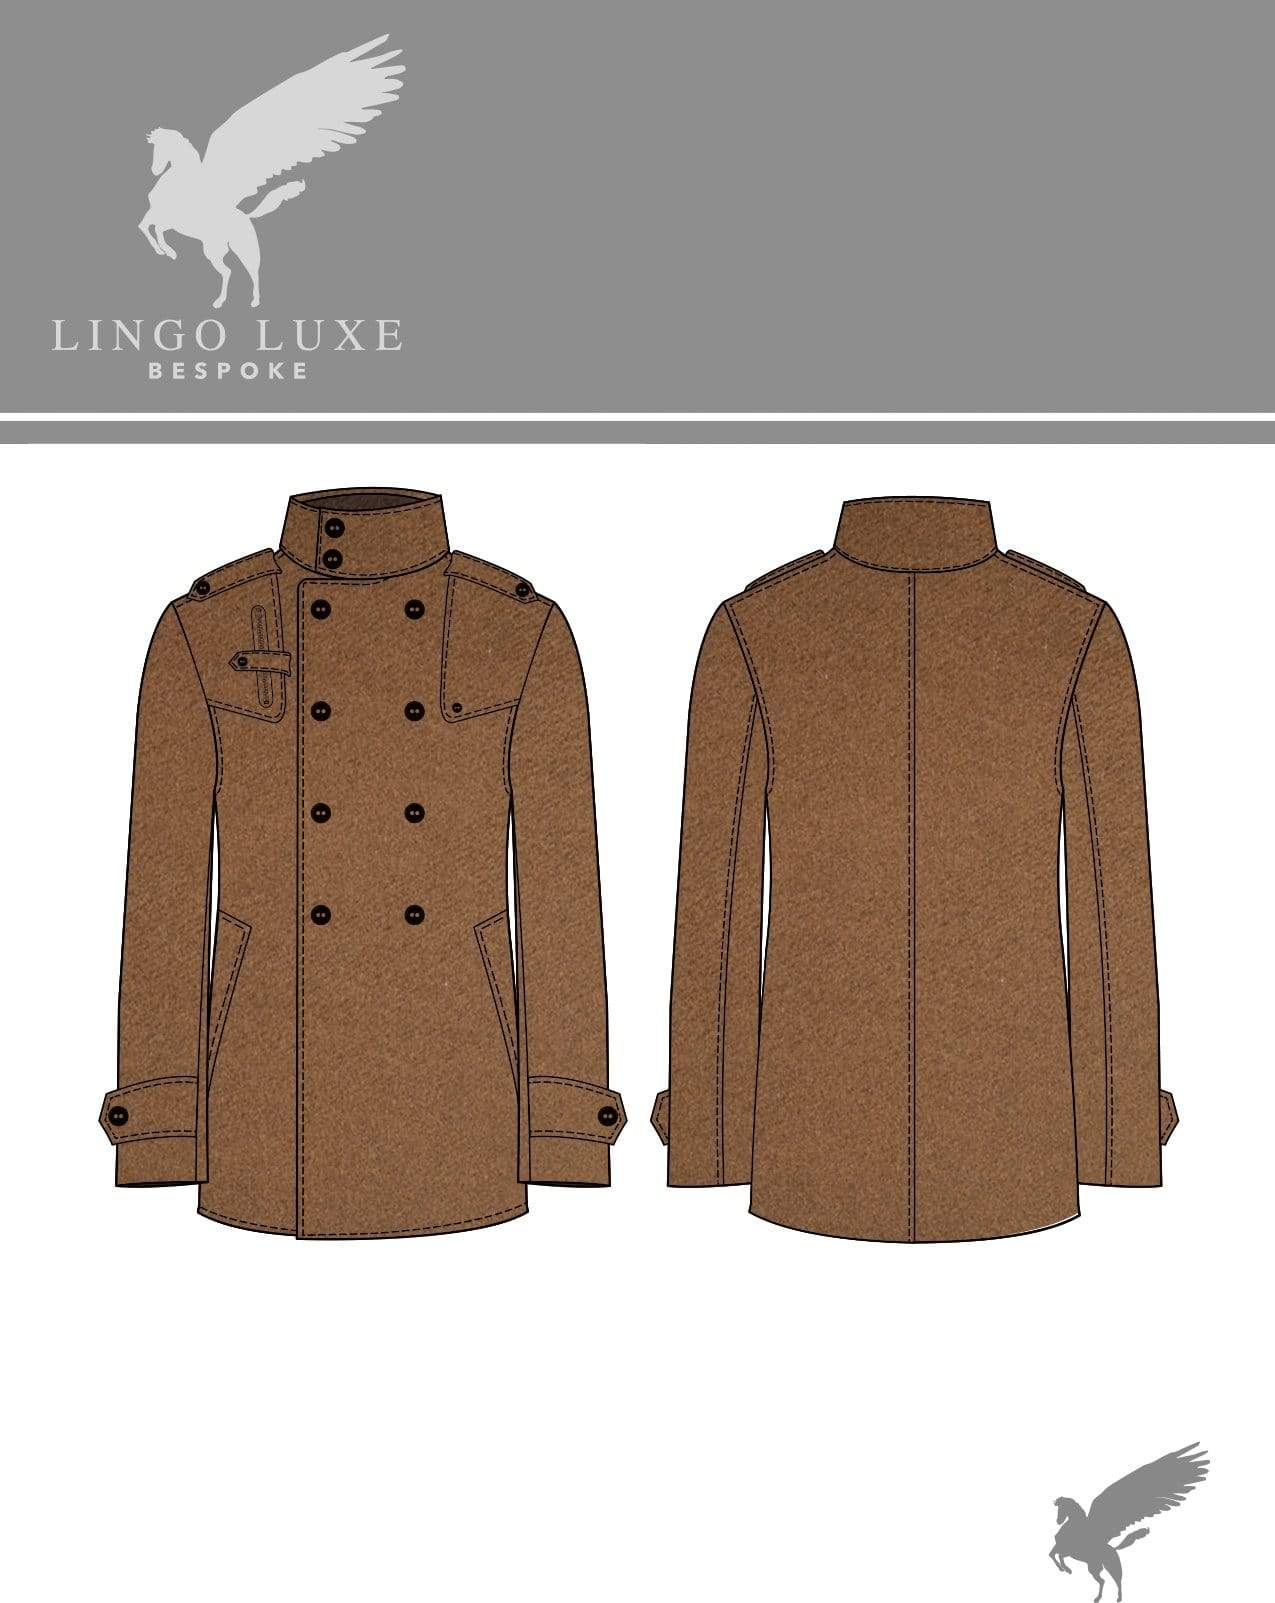 Outerwear | Lingo Luxe The Sportsman Sportcoat | Blonde Coffee-Lingo Luxe Bespoke